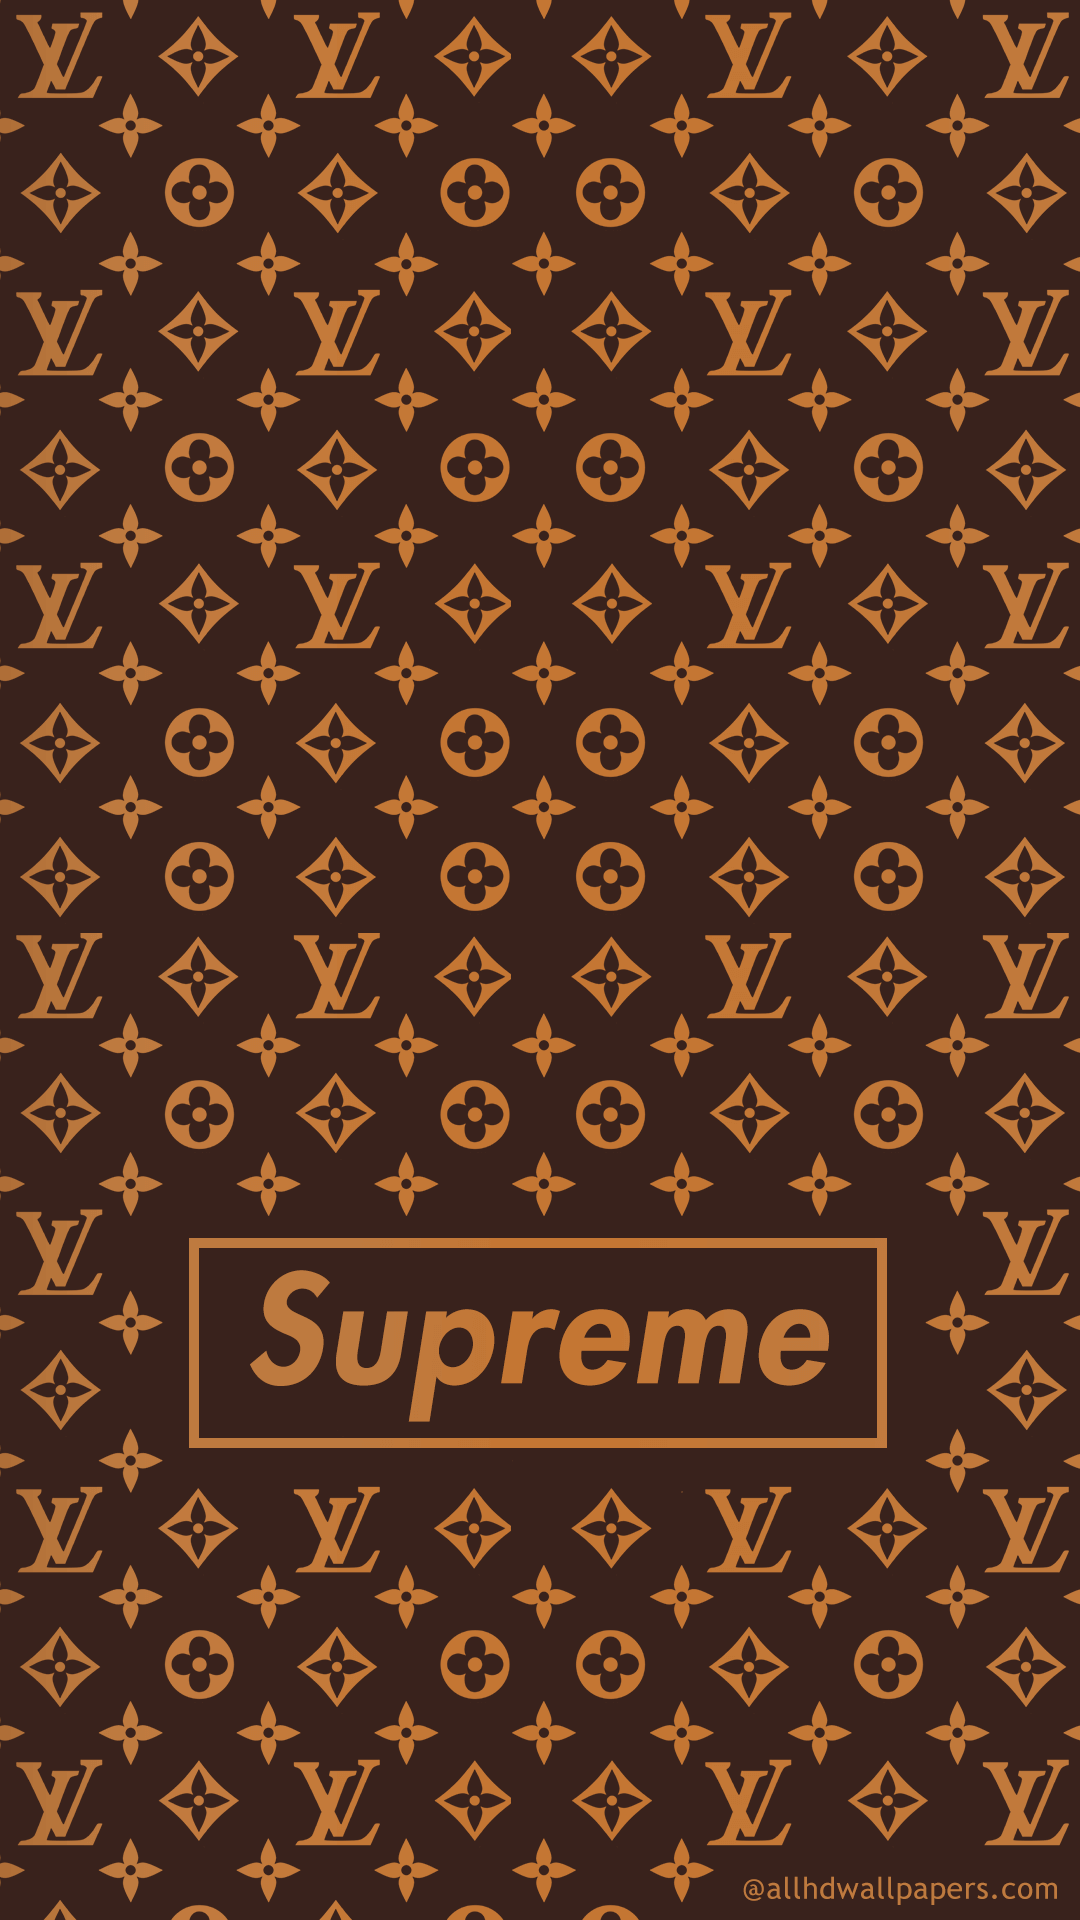 Supreme X Louis Vuitton Wallpapers